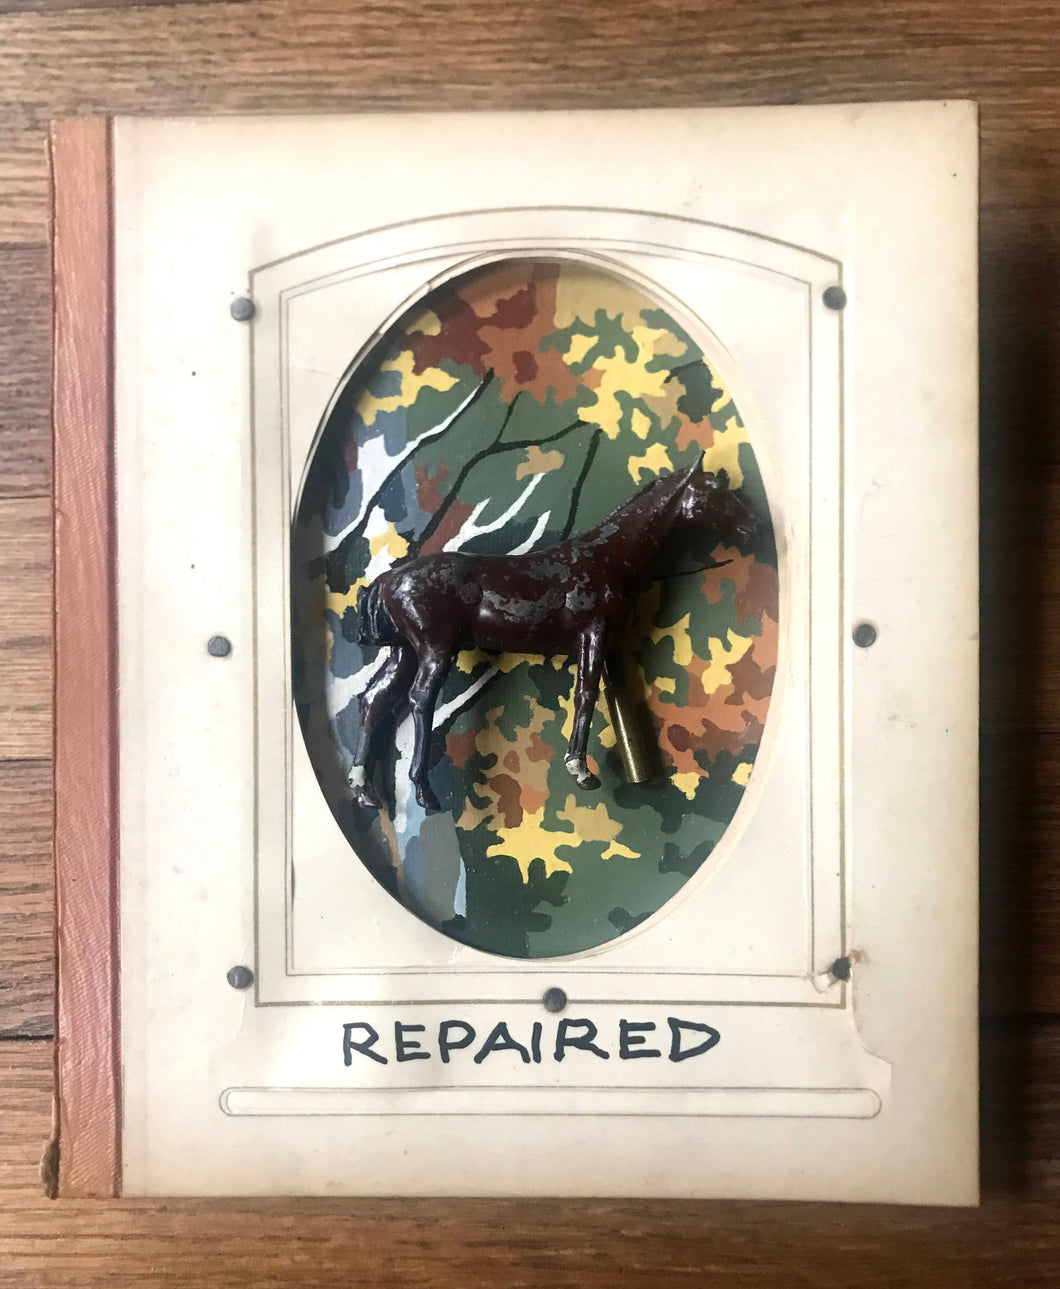 Repaired - Original Tin Artwork